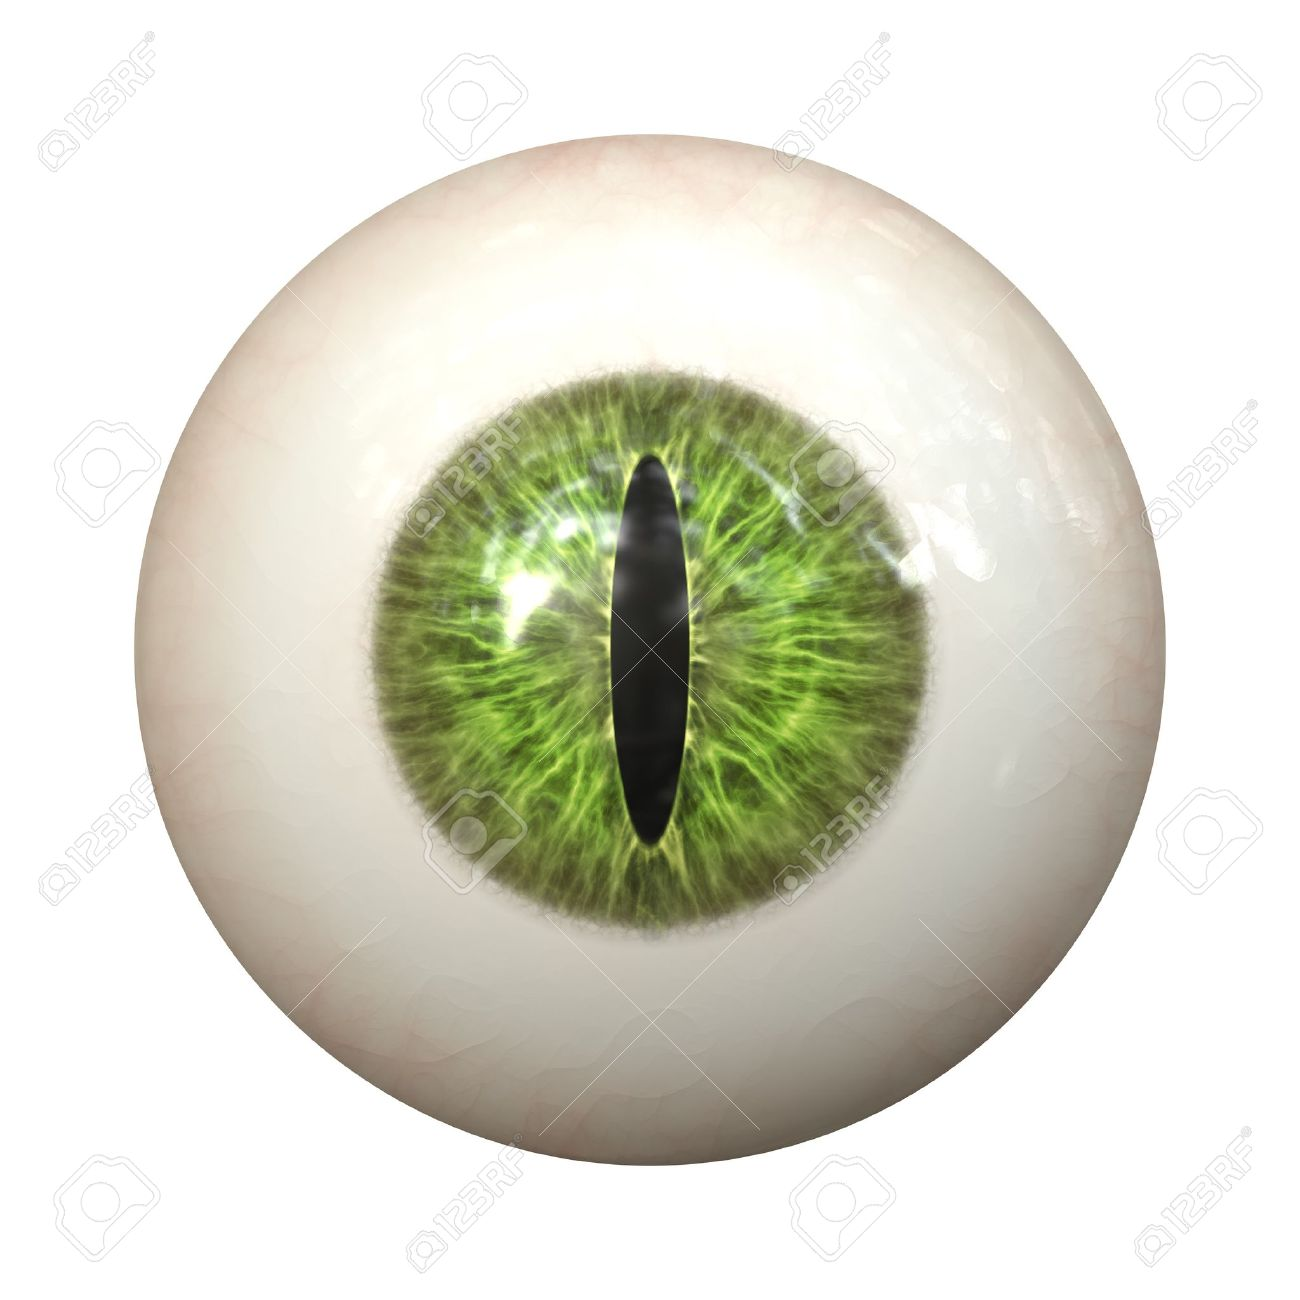 An Image Of A Nice Green Cat Eye Texture Stock Photo, Picture And ...